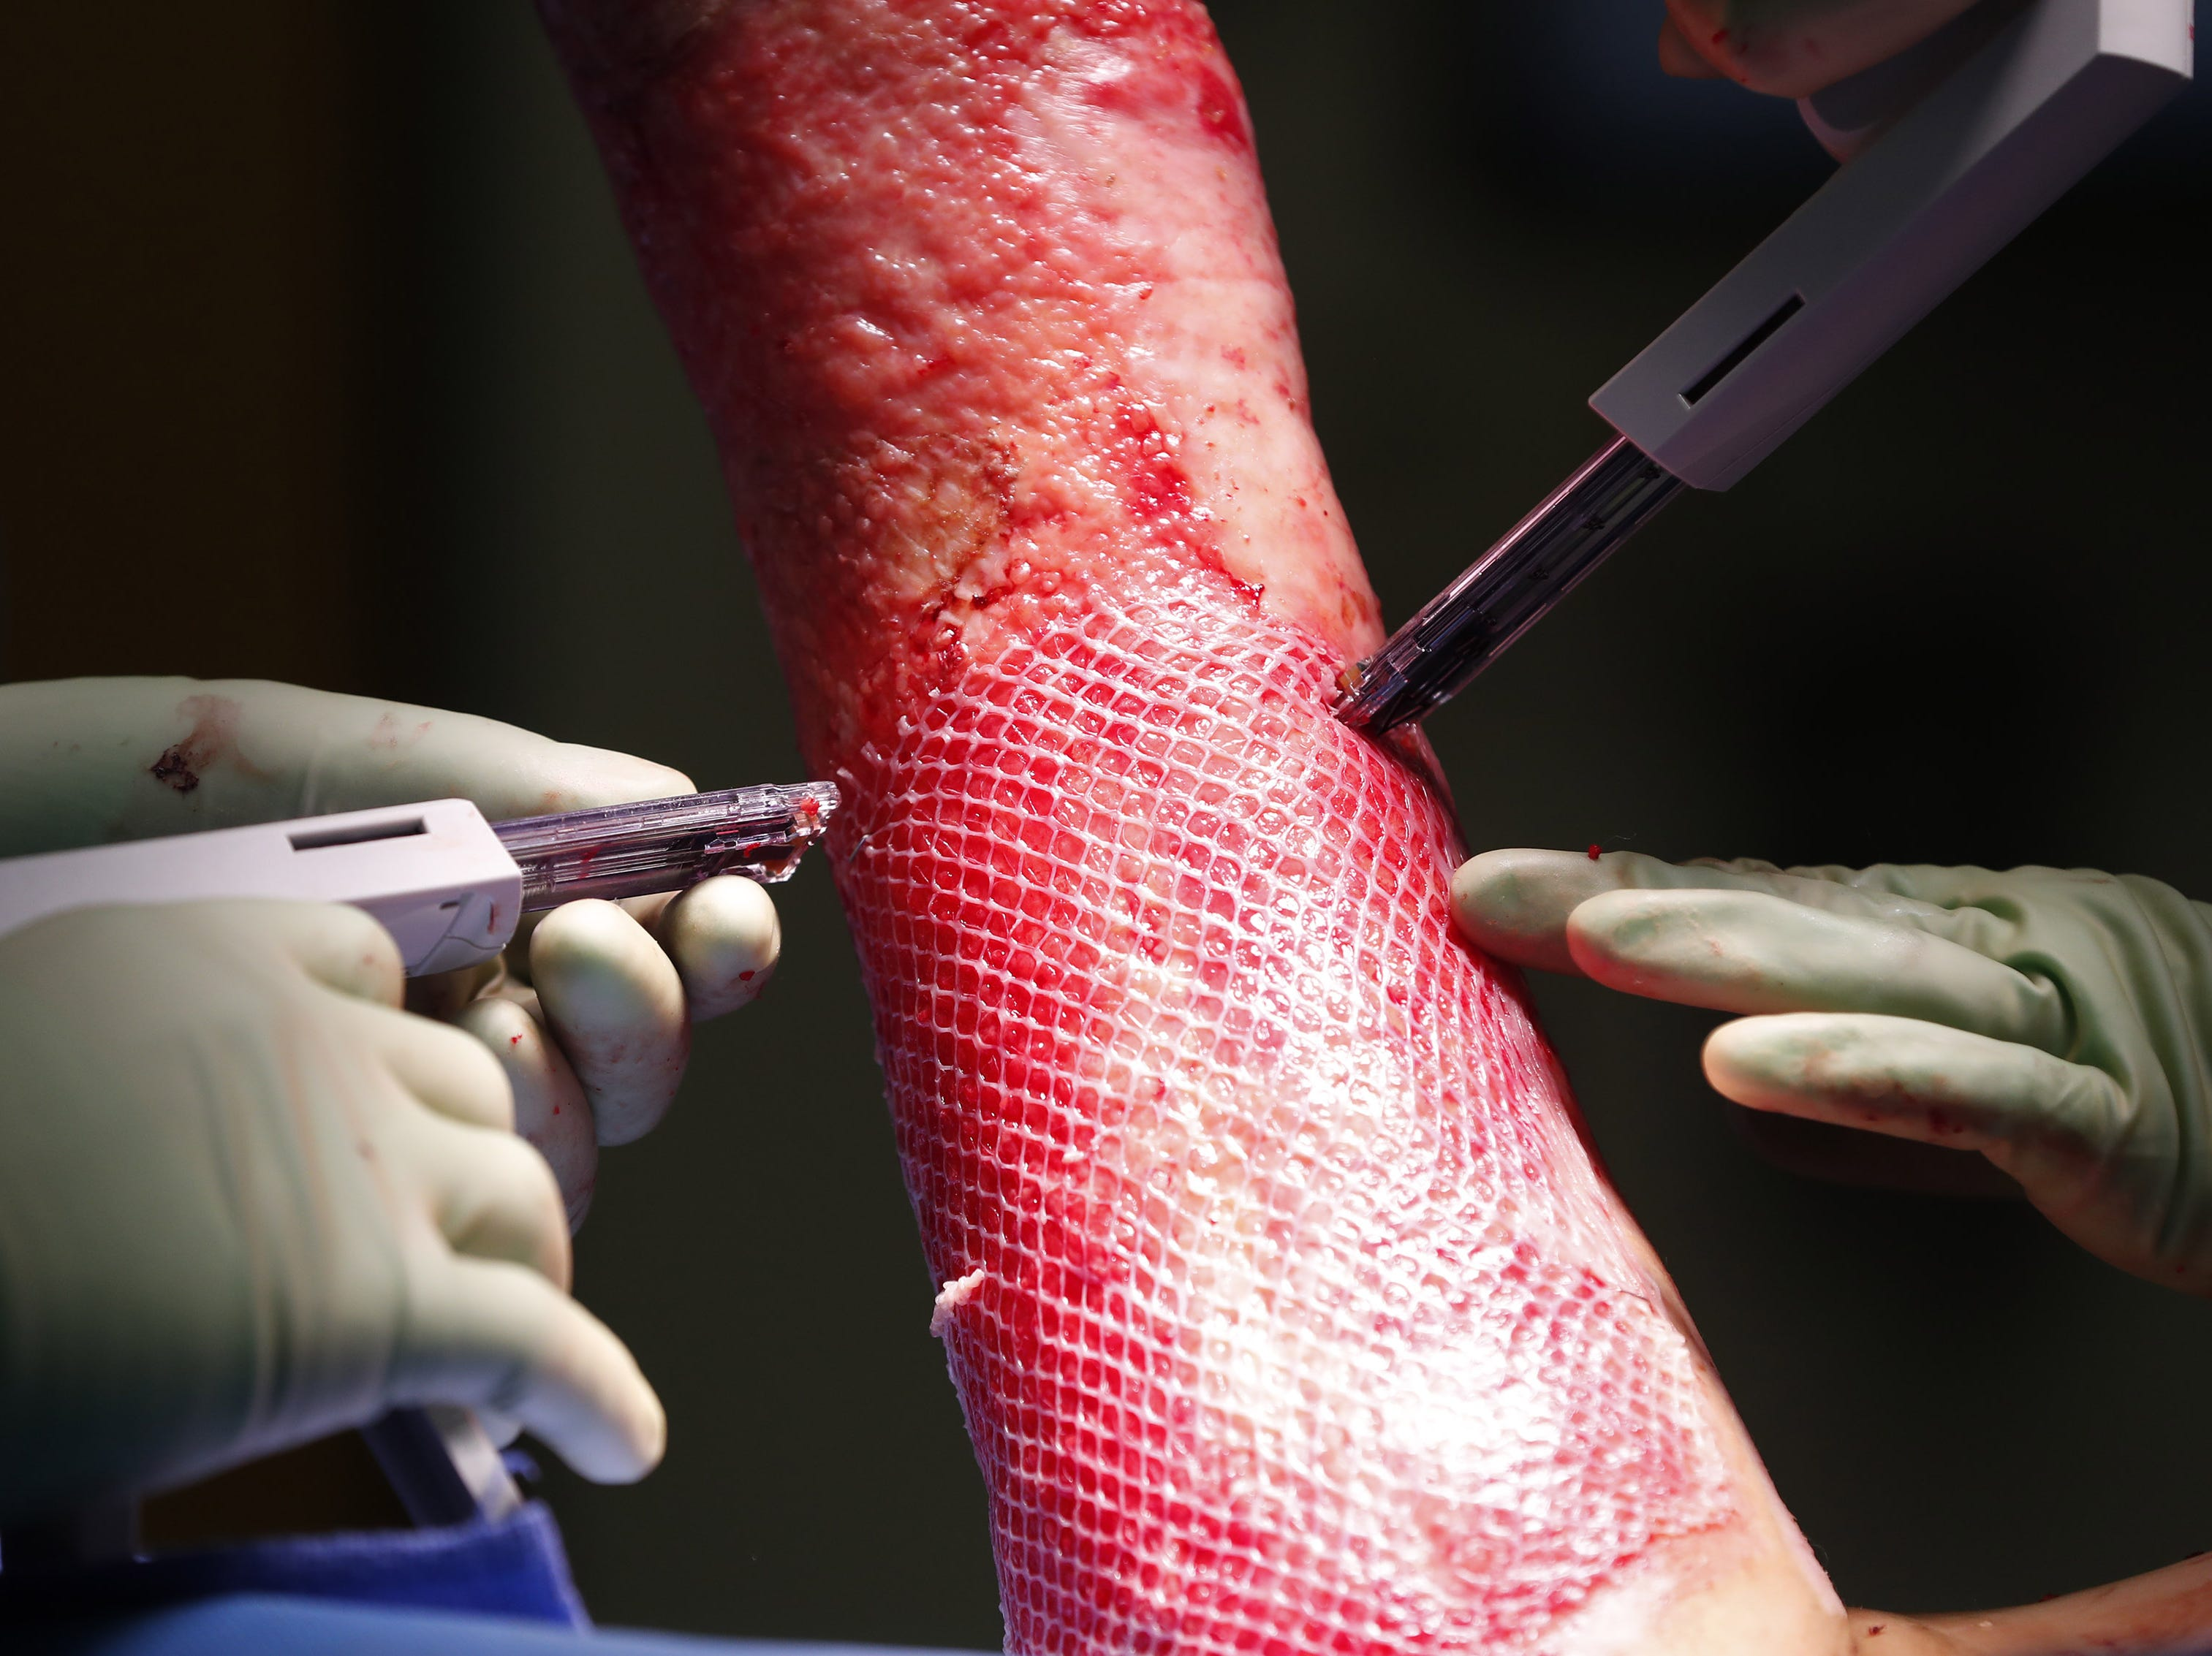 A skin graft is stapled in place during surgery for Isabella McCune at the Arizona Burn Center in Phoenix May 24, 2018. She was severely burned in a home accident in March.